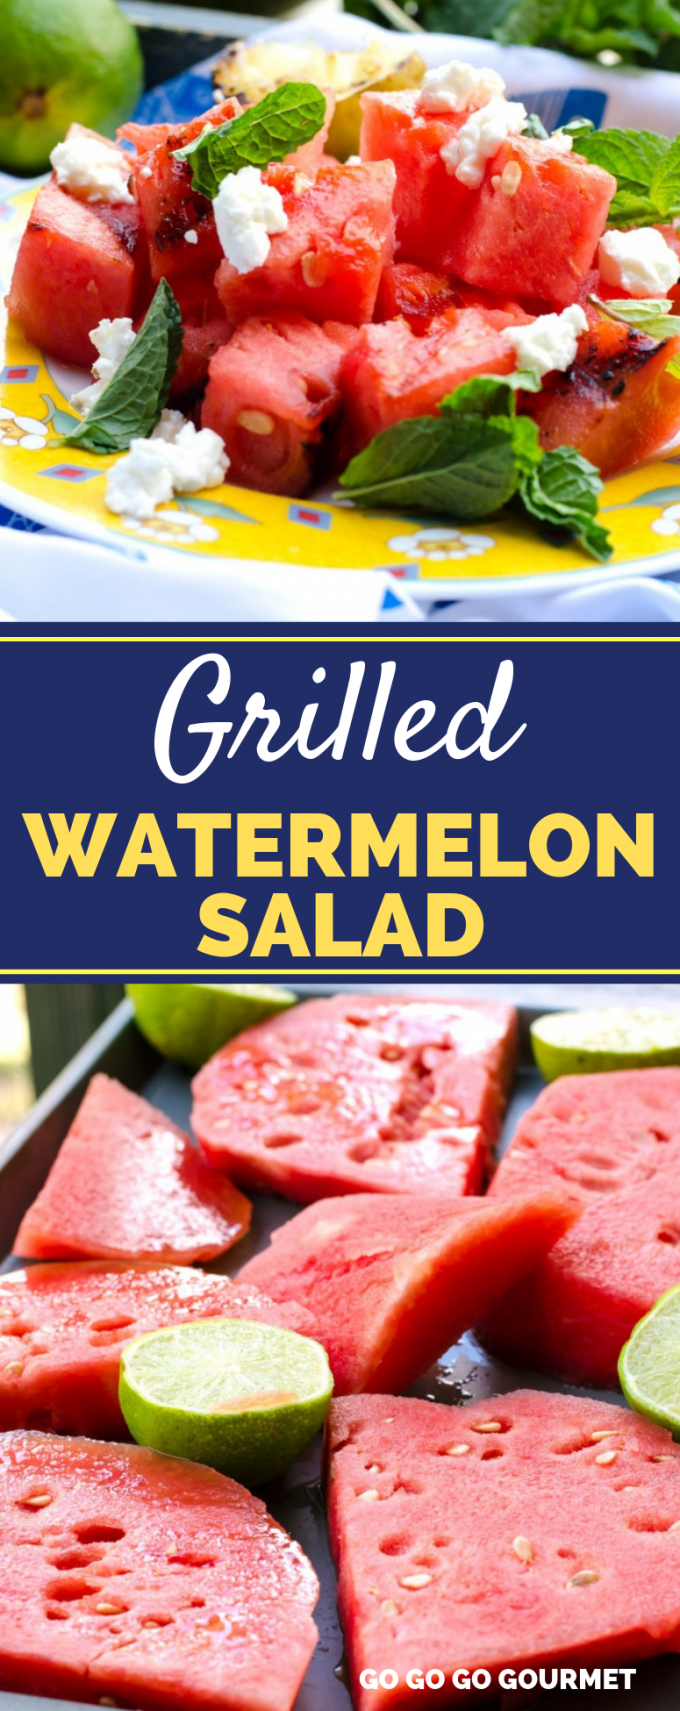 Fresh watermelon is the perfect sign that summer is here! Try this new twist on it- charred on the grill, with goat cheese, honey, lime and mint! This Grilled Watermelon Salad is even sweet enough to serve as a dessert! #gogogogourmet #grilledwatermelonsalad #grilledwatermelon #summersalads via @gogogogourmet